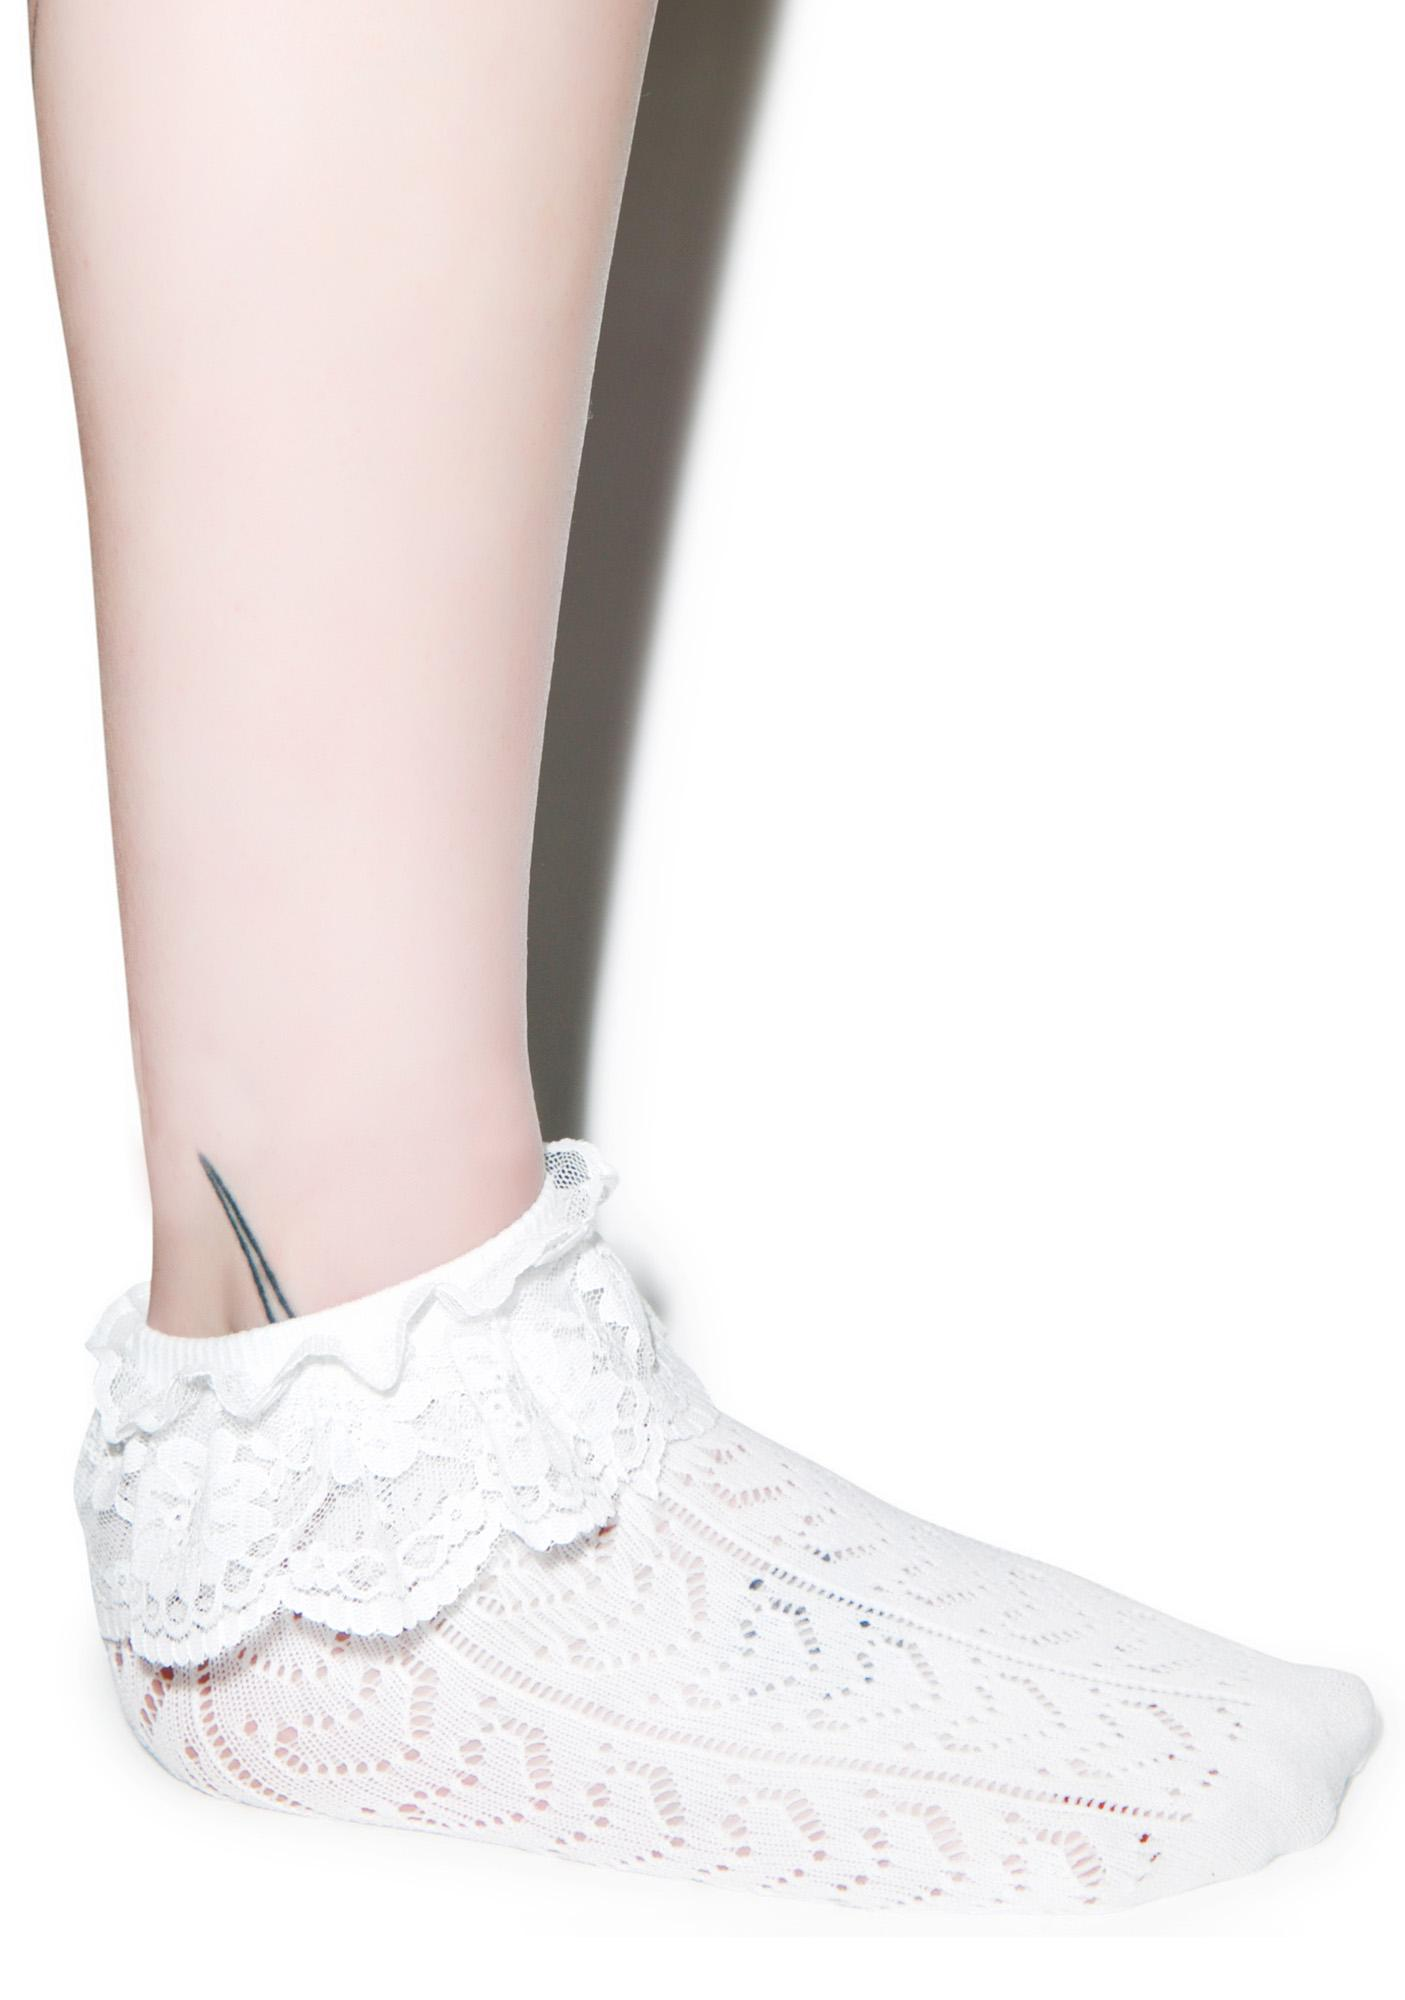 Lovelace Ruffle Ankle Socks